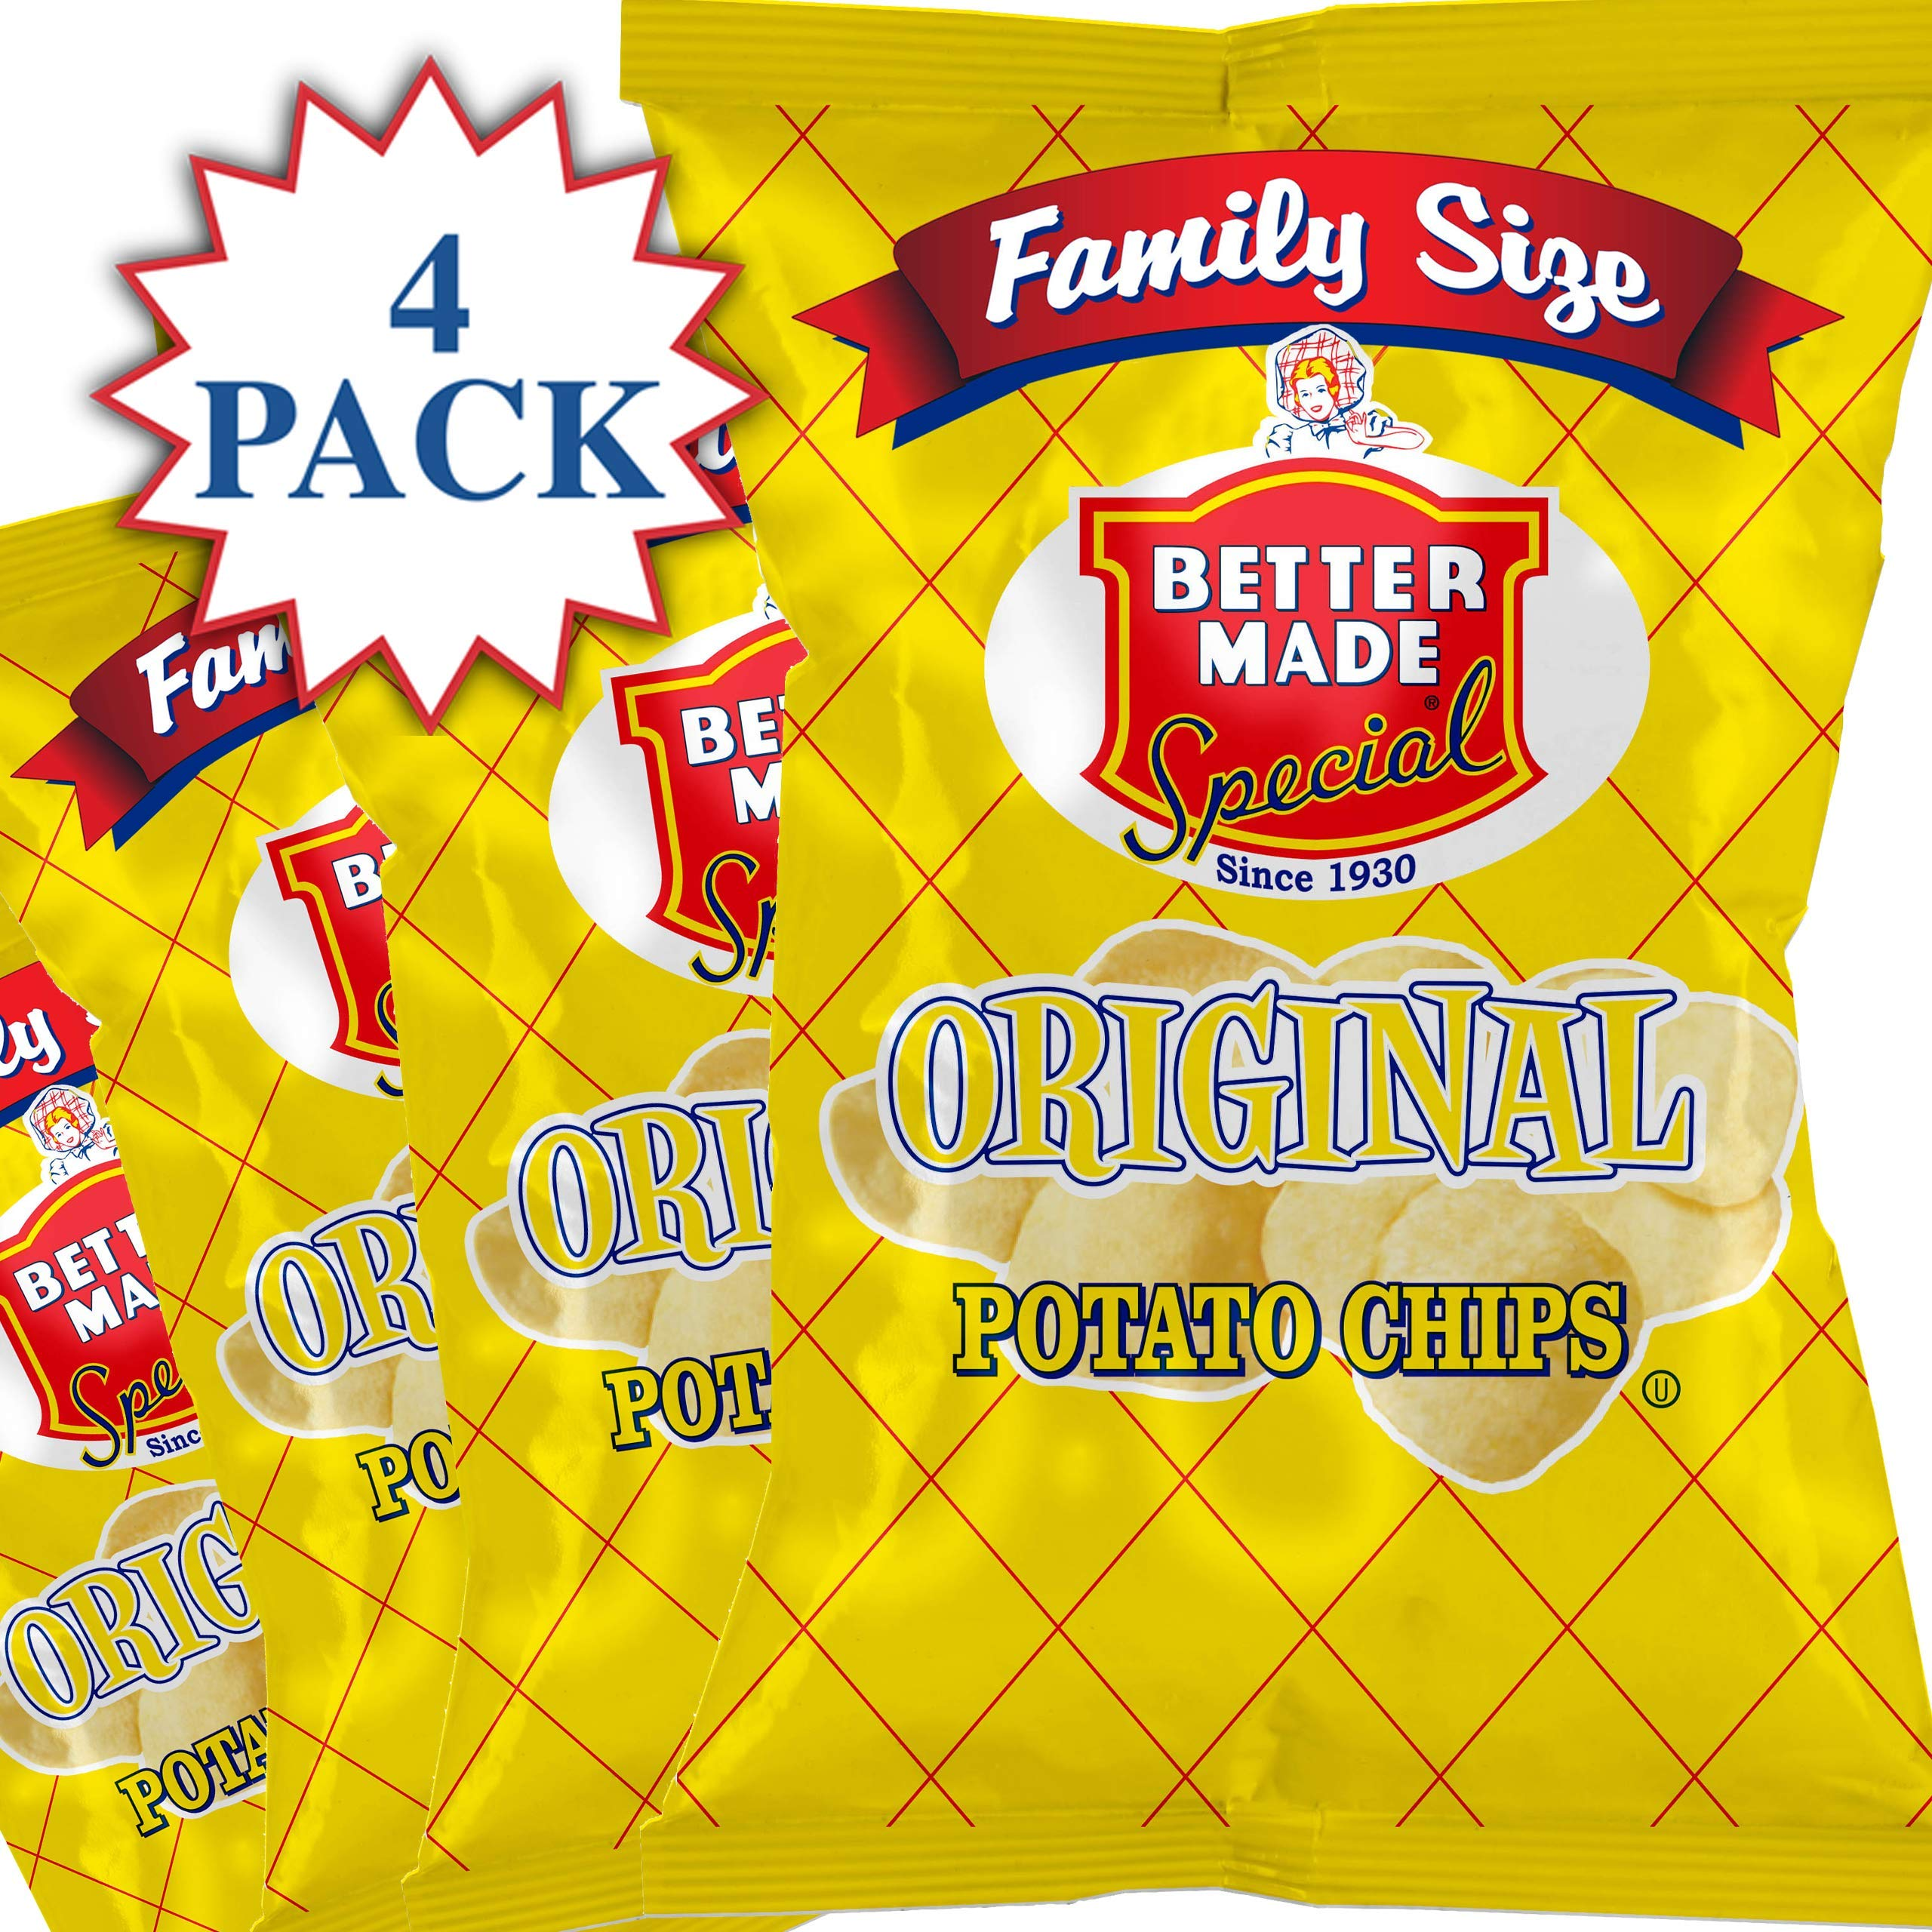 Better Made Special Original Potato Chips Pack (4) x Family Size Bags 9.5oz (Pack of 4)